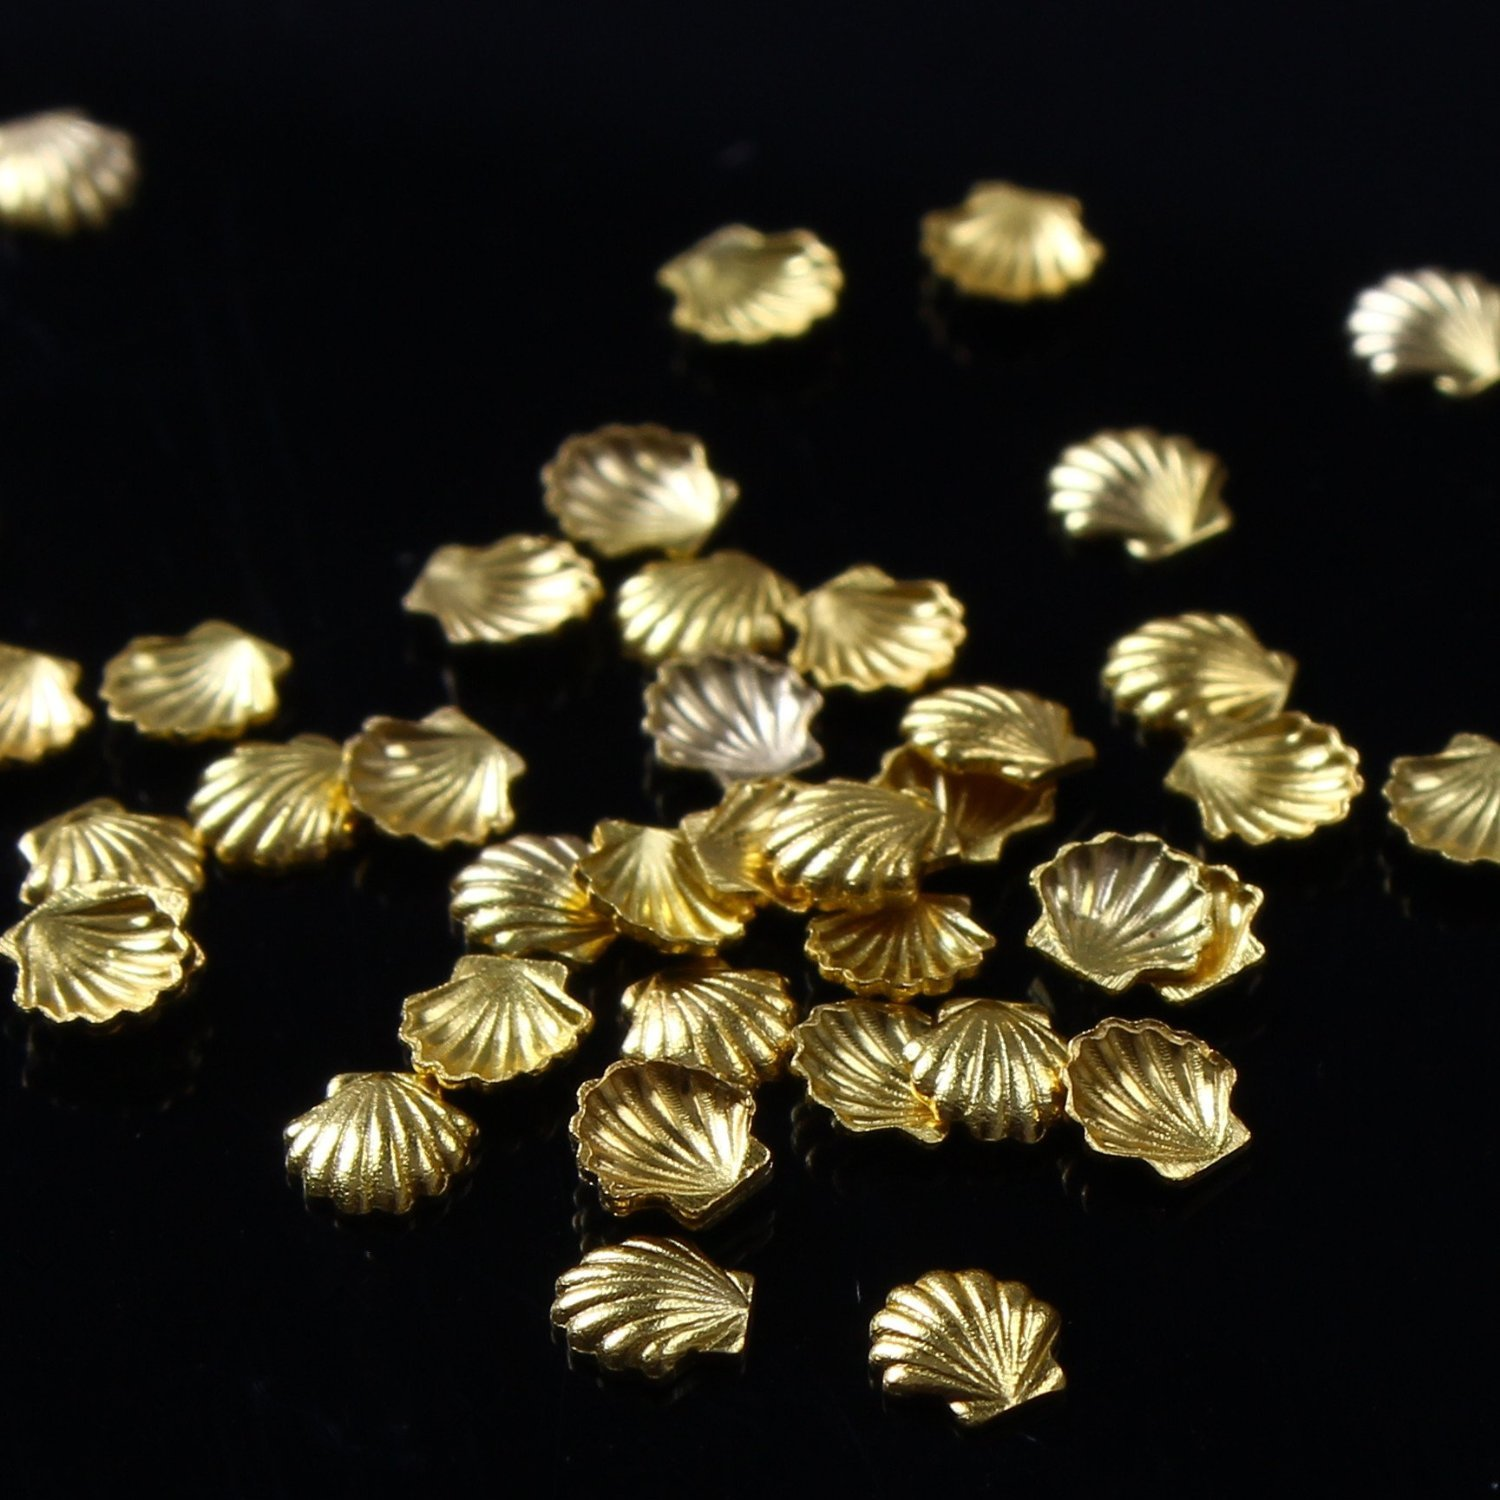 So Beauty 100pcs New Metal Alloy Shell Design Studs Beads For Nail Art Cellphone DIY Decoration Craft Golden 3mm Forever Love